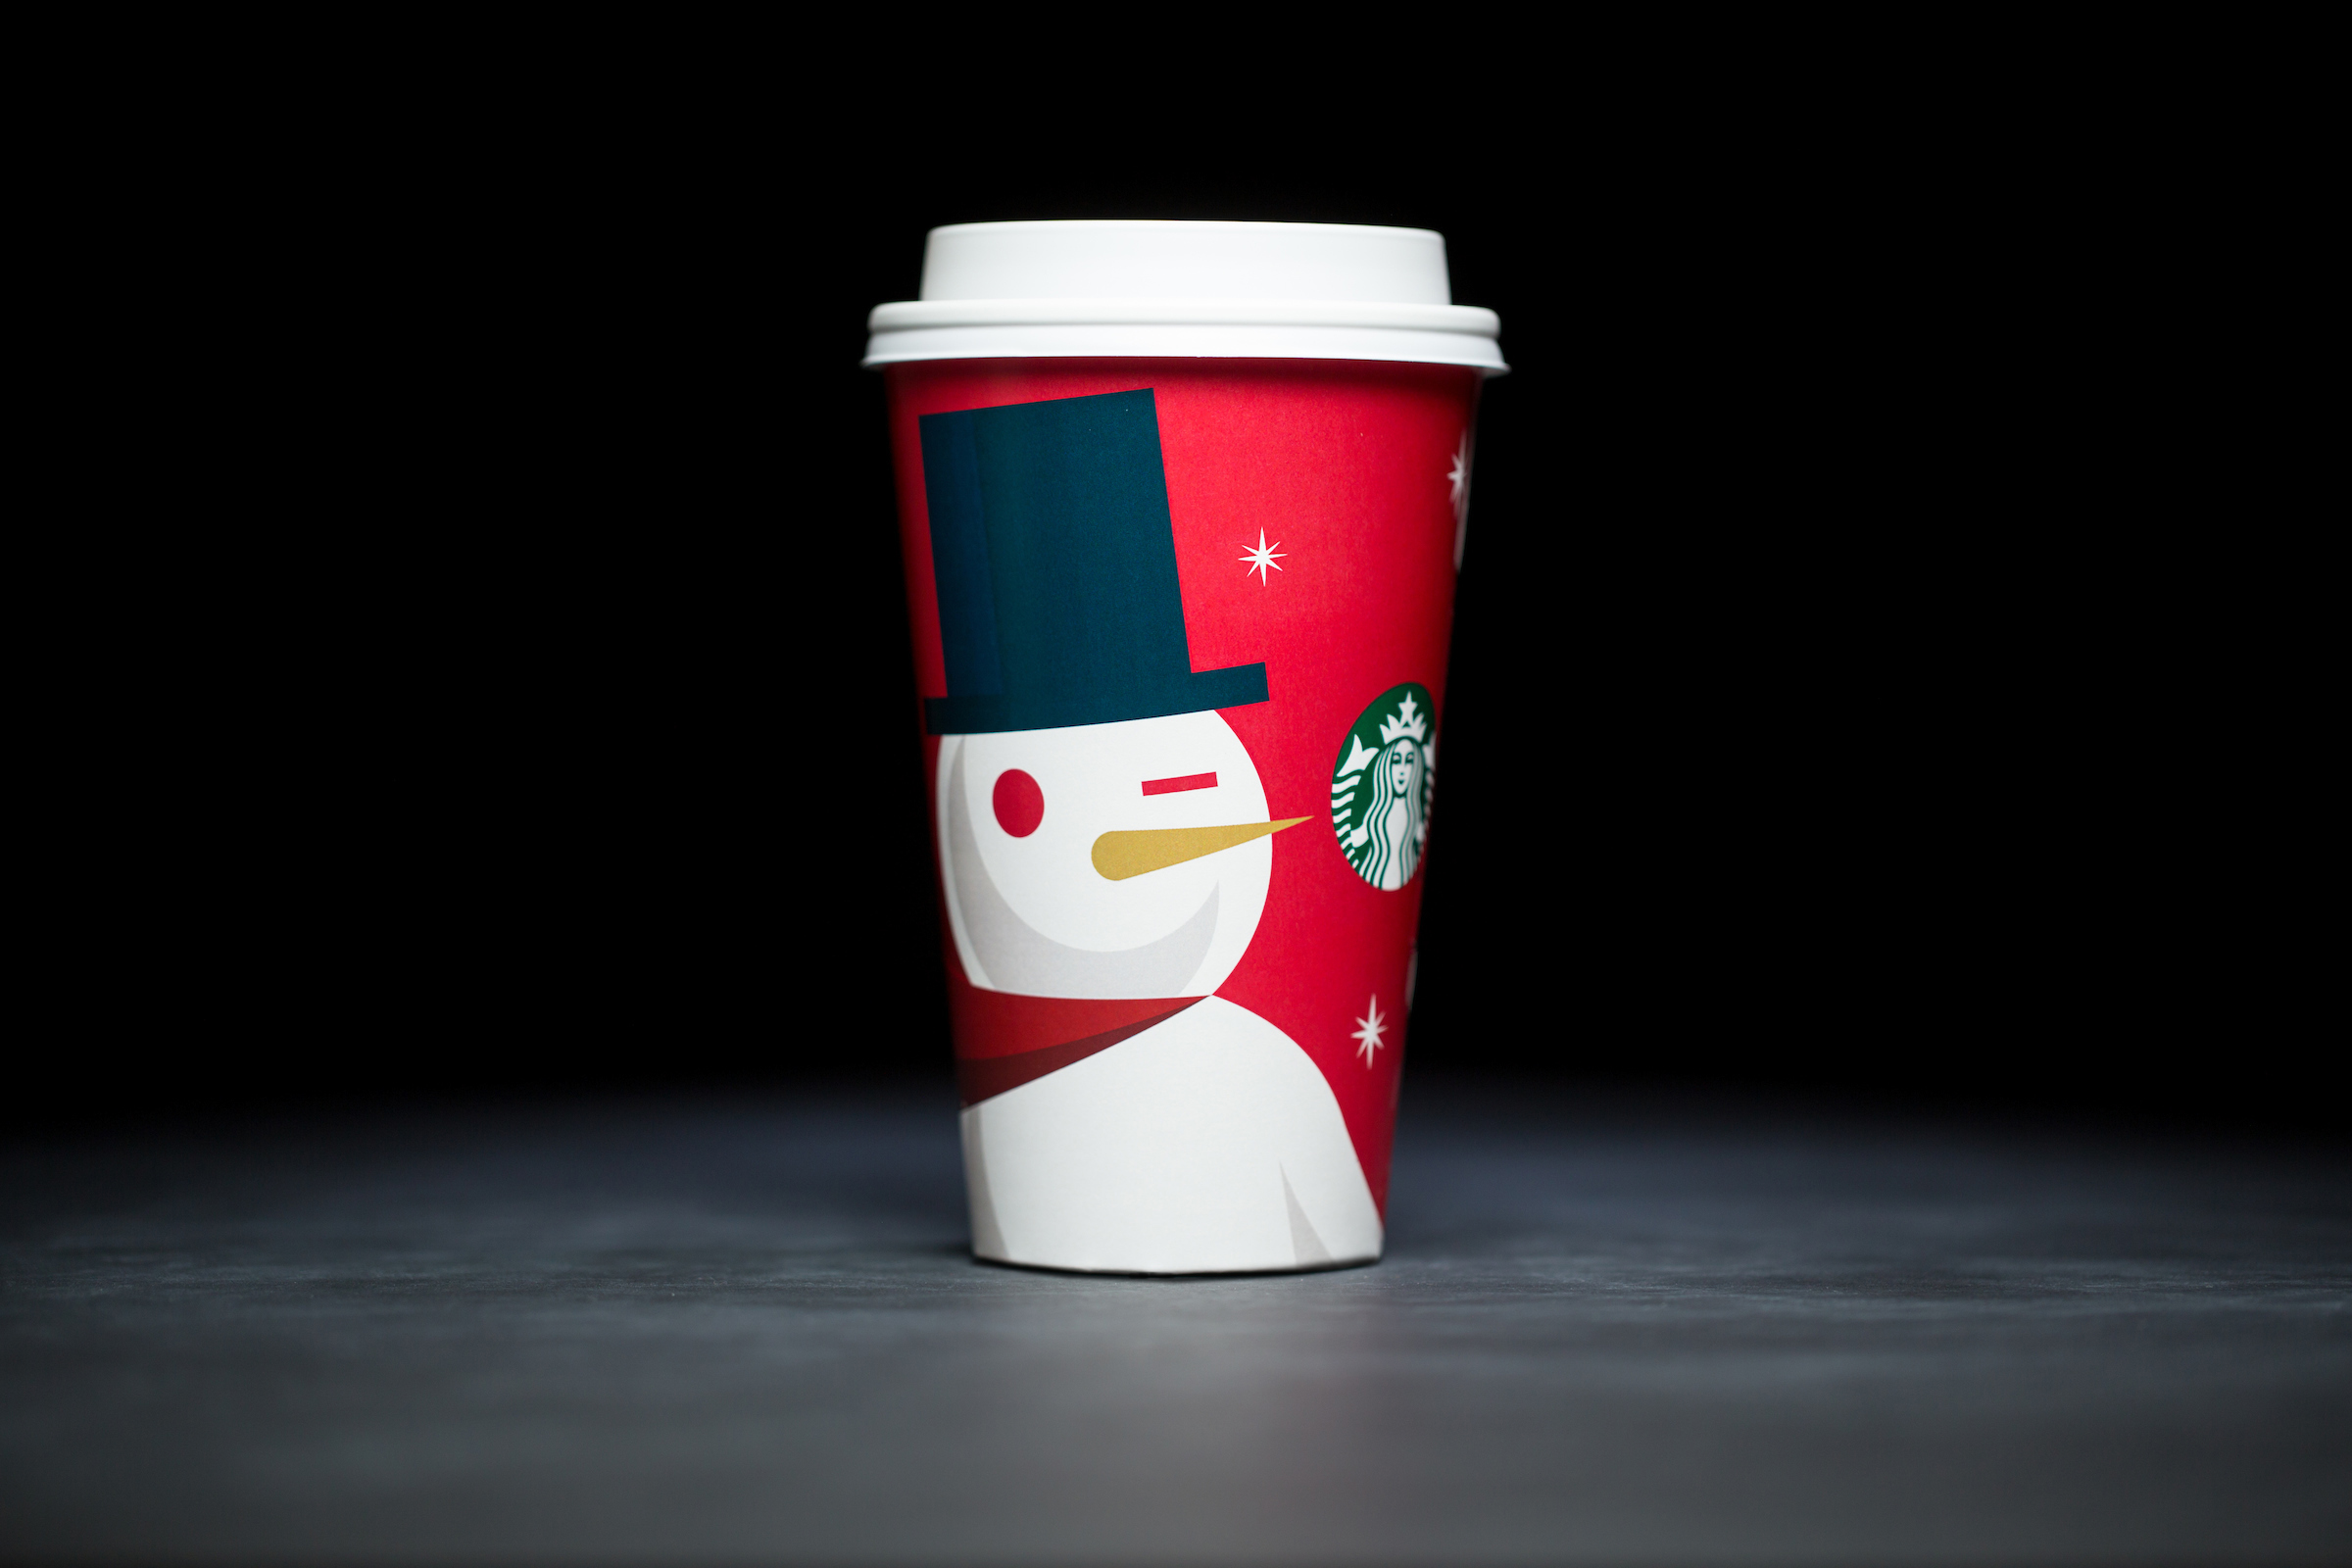 2012: For 20 years, Starbucks have released a range of holiday cup designs, most of them based around their world famous red cup. It's not easy to find the very first Starbucks holiday cups, which made their debut in stores in 1997. Few were saved, and electronic design files were lost in an earthquake in 2001. Even an Internet search is unyielding, with the cups having made their arrival long before the first selfie. But, we have them here! Click on for a photos of all 20 holidays cup designs. (Image: Joshua Trujillo/Cover Images)